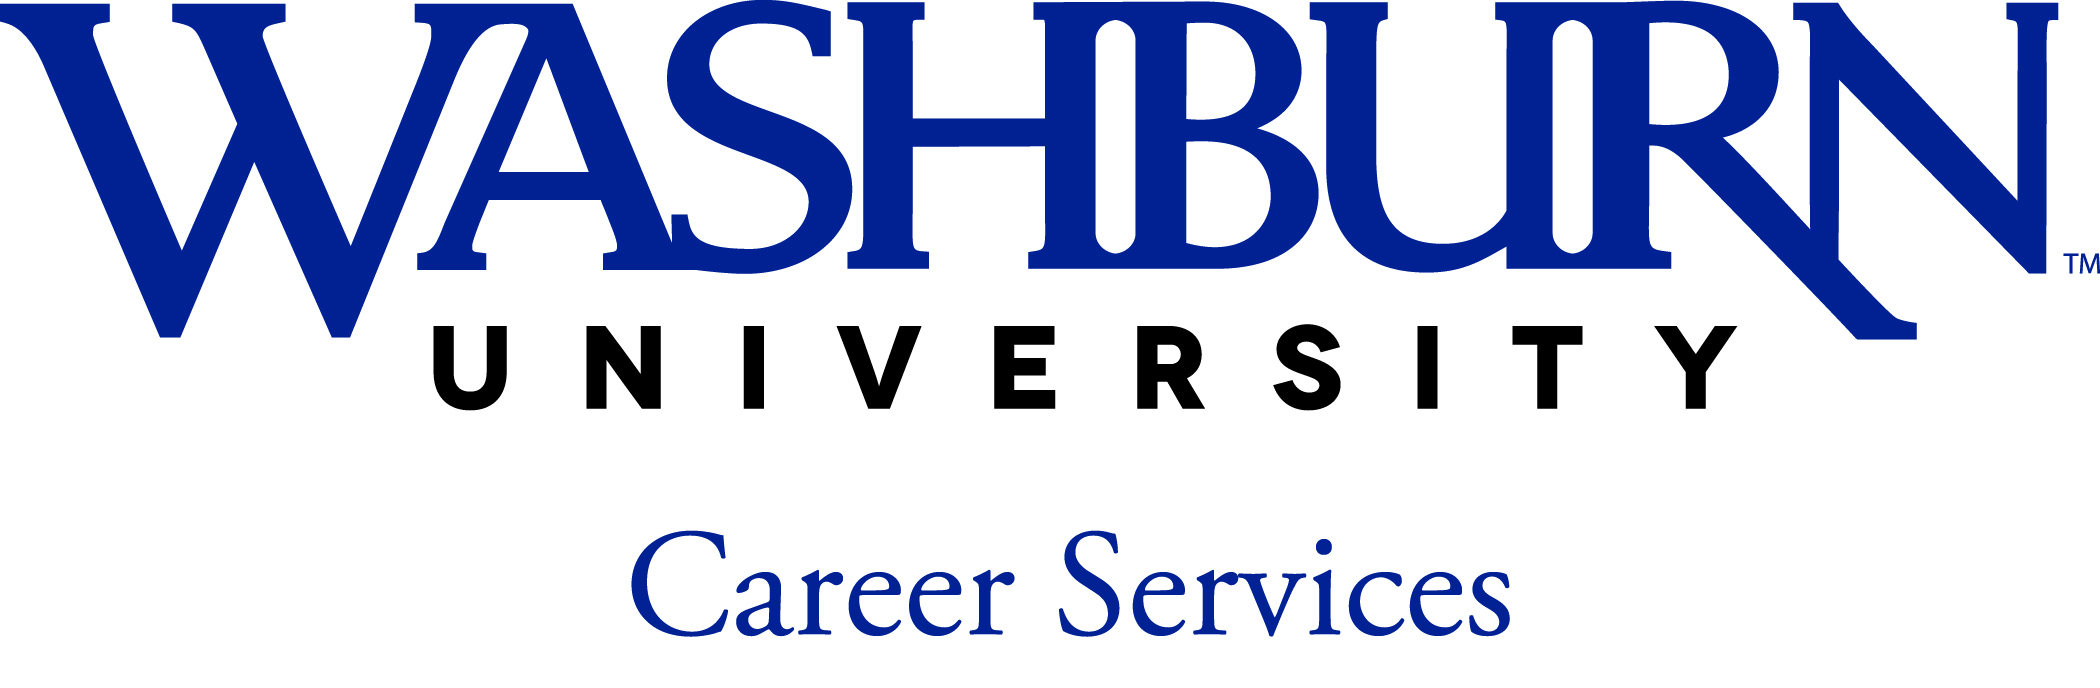 career services washburn university career services washburn university 3